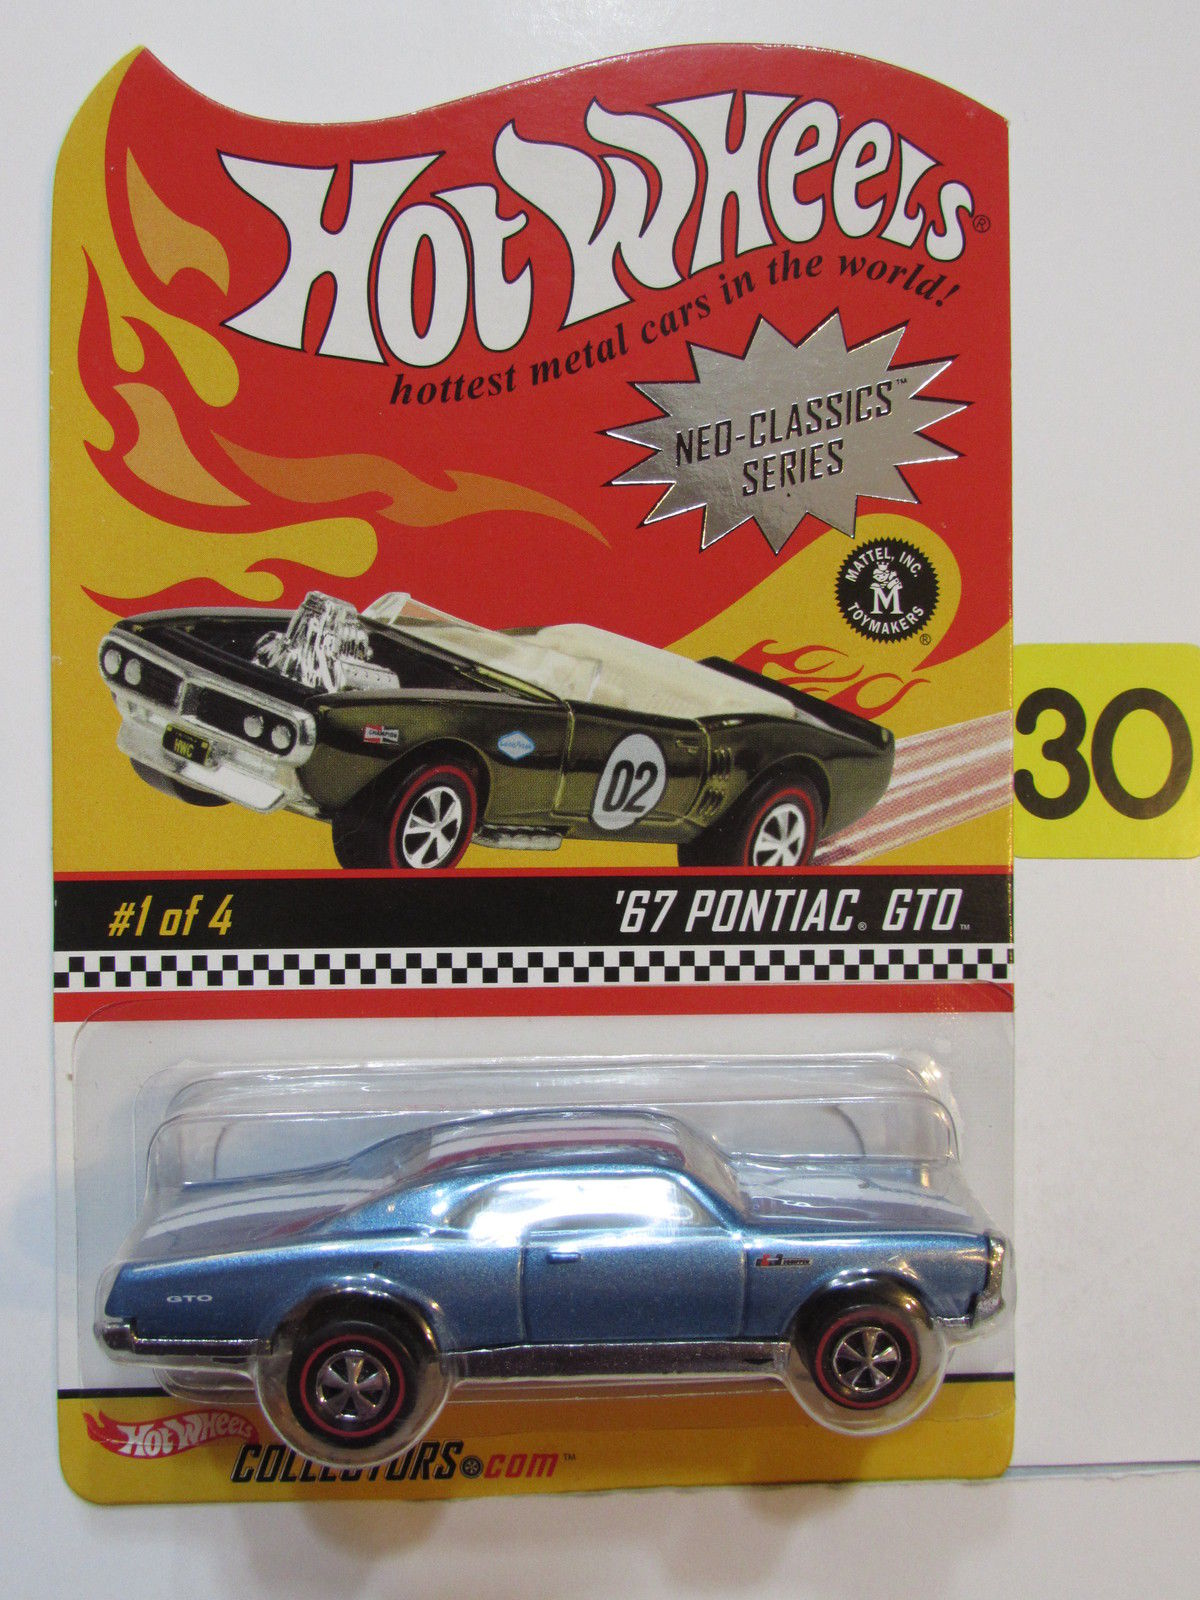 HOT WHEELS 2003 NEO-CLASSICS SERIES #1/4 - '67 PONTIAC GTO